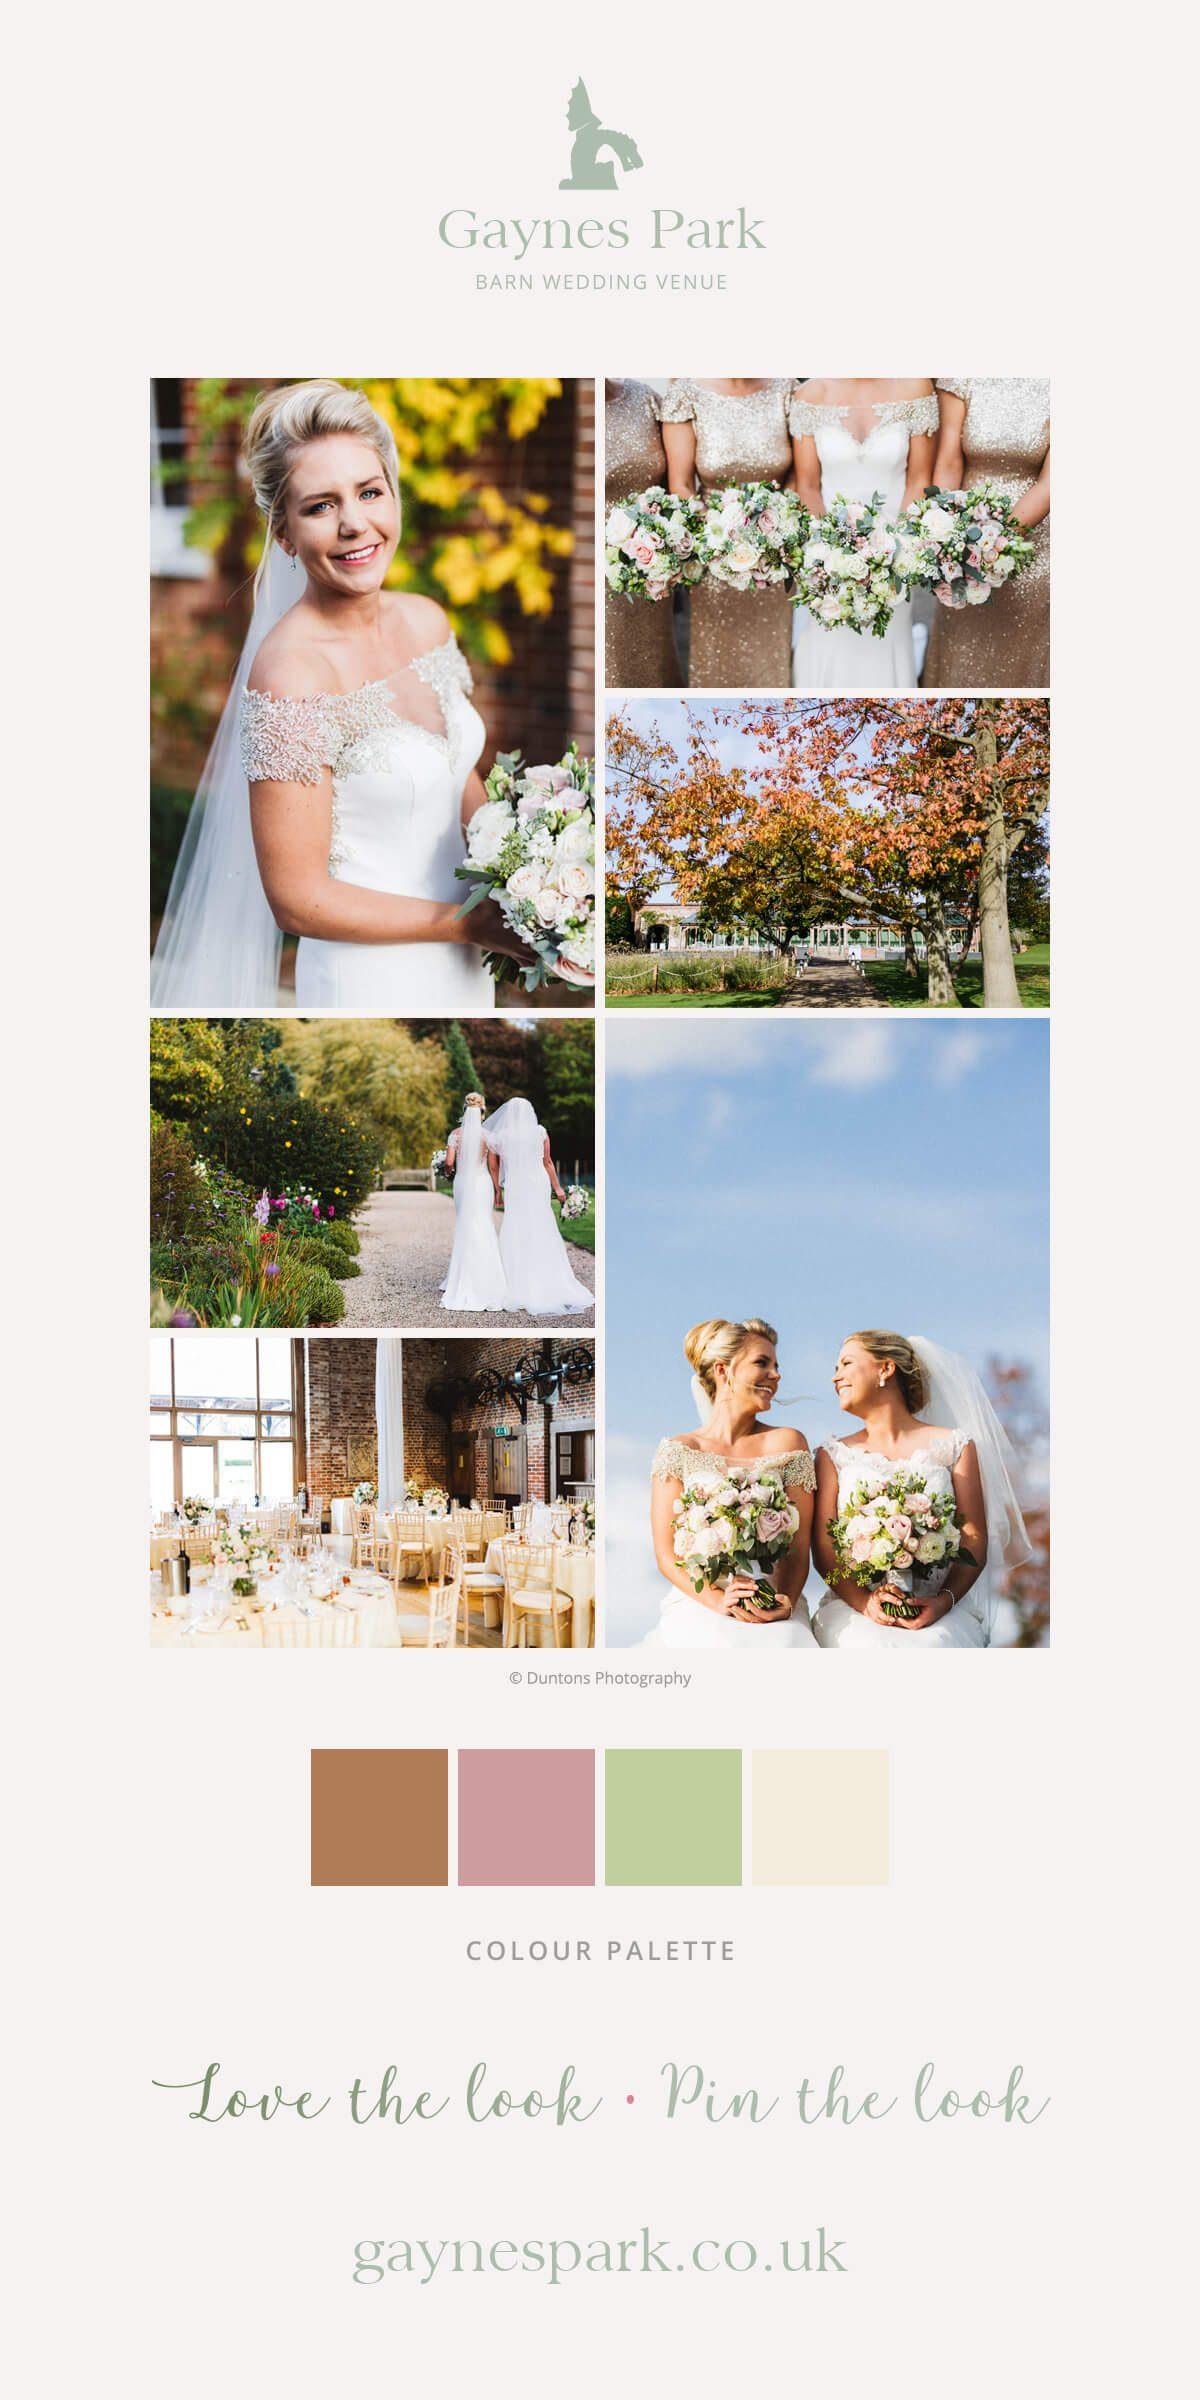 Sophie and Beth's real life wedding at Gaynes Park